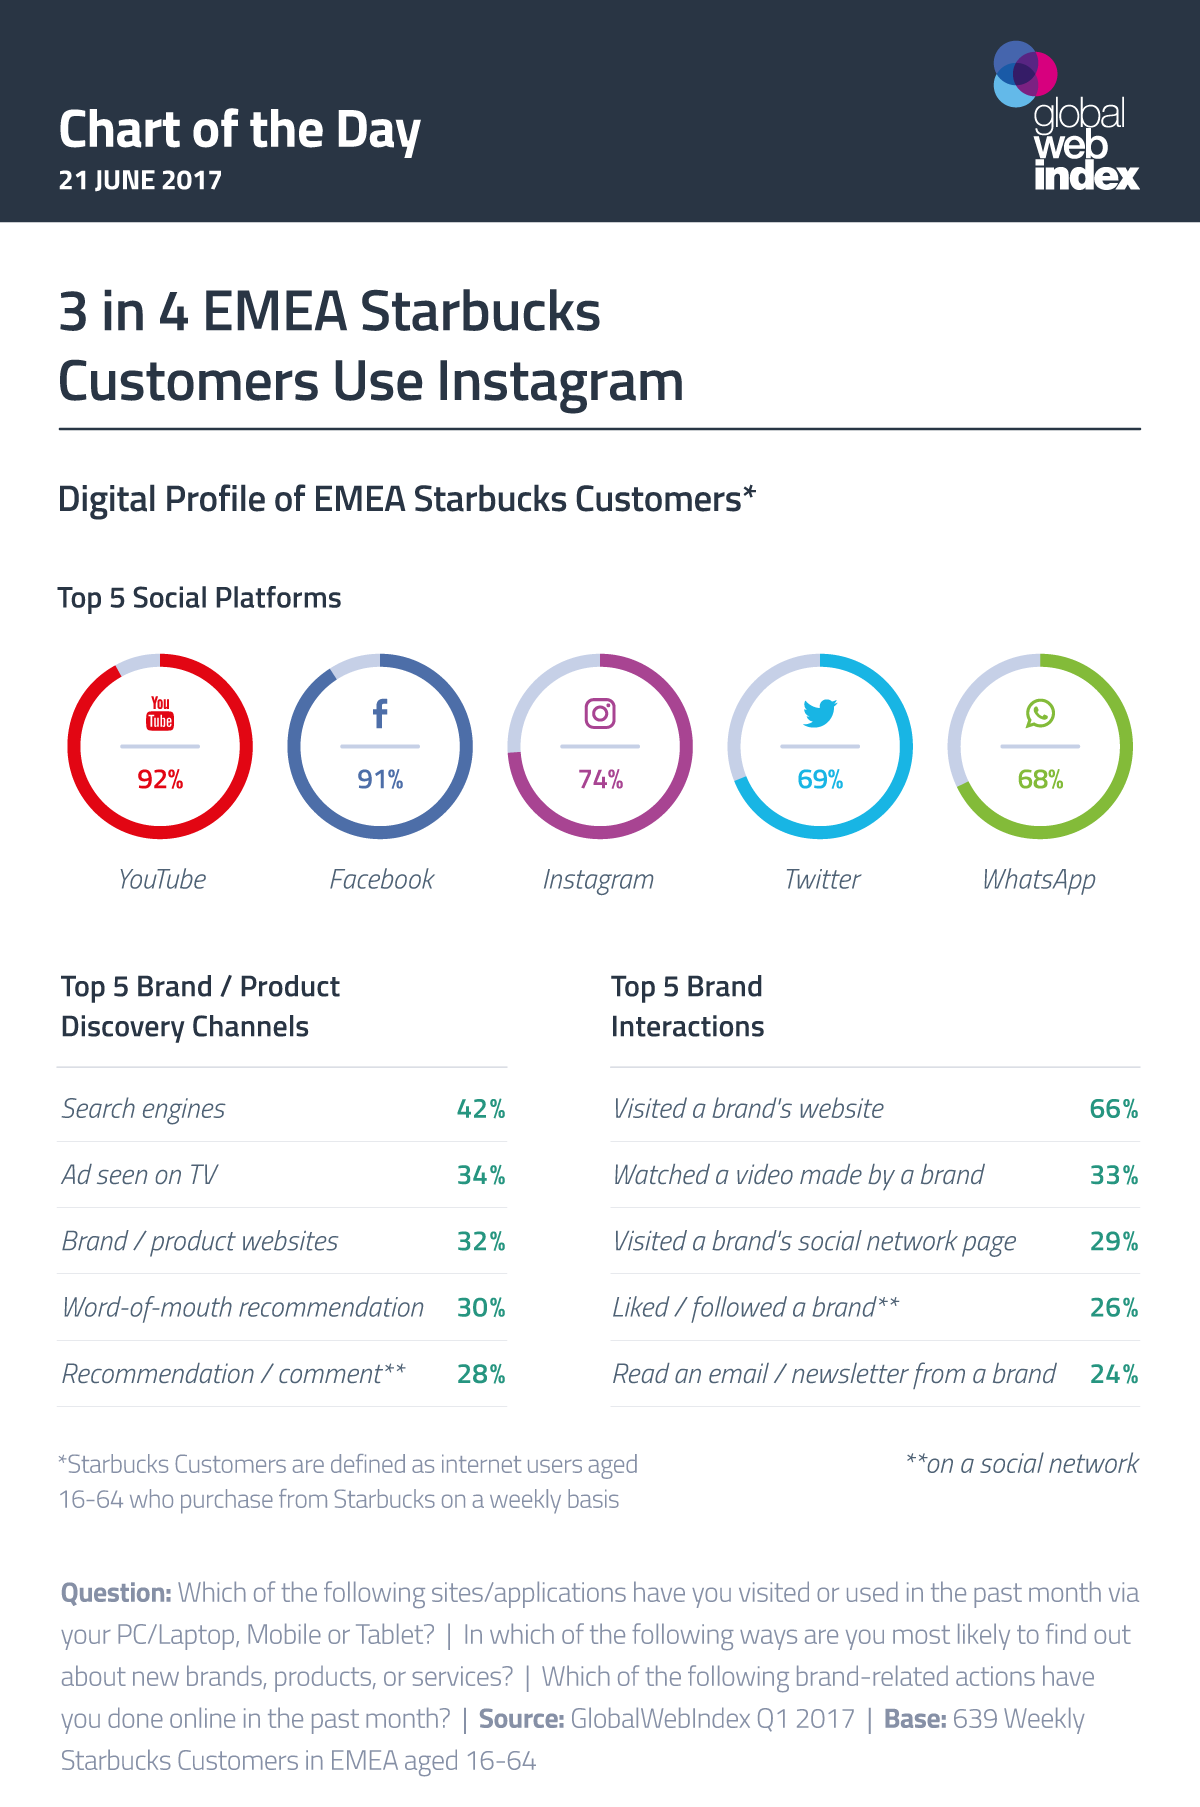 3 in 4 EMEA Starbucks Customers Use Instagram